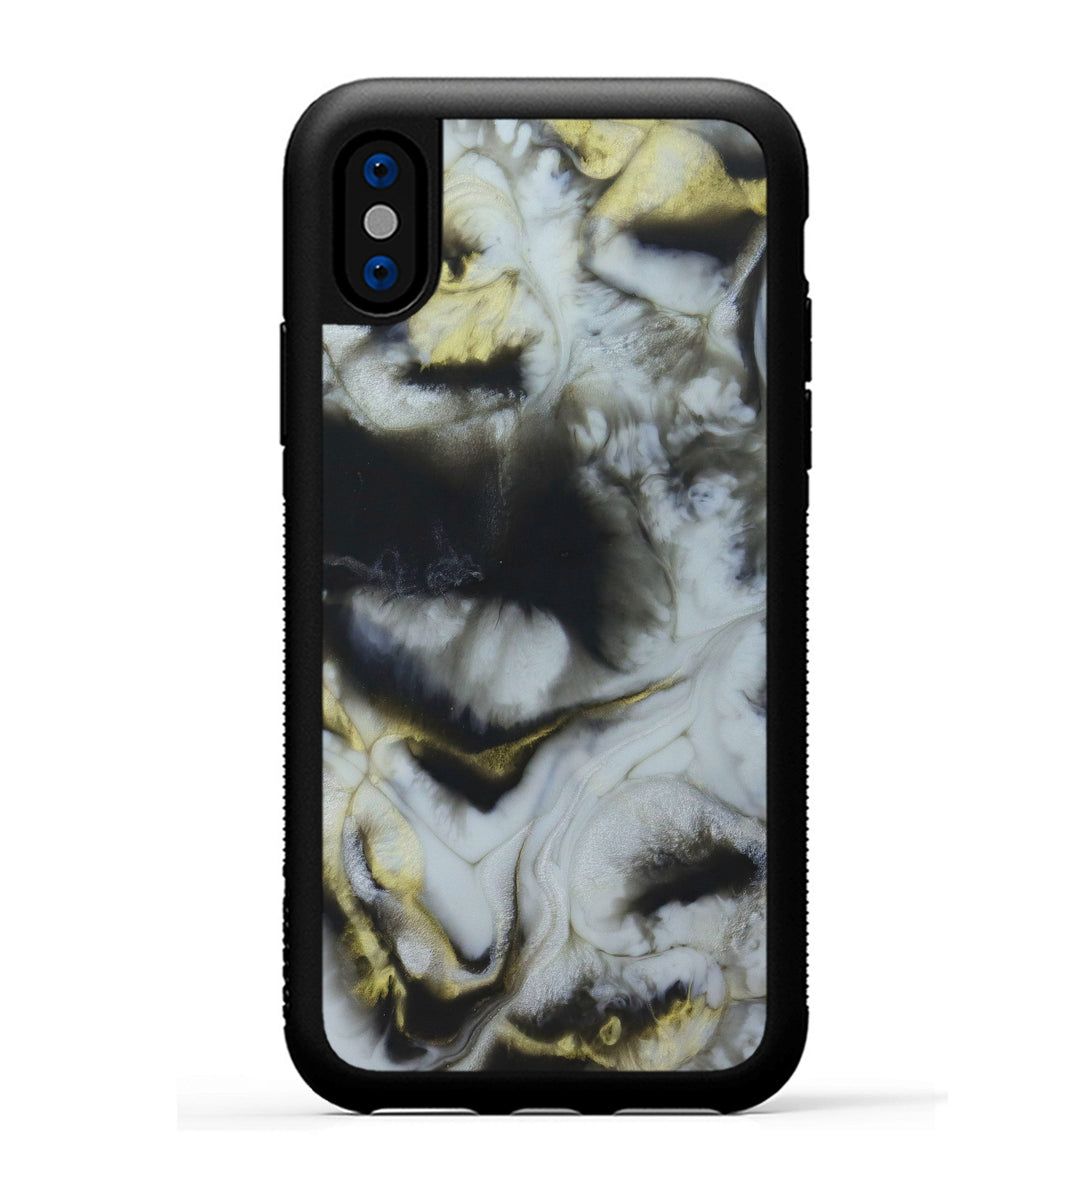 iPhone Xs Case - Vallipuram (Black & White, 345610)